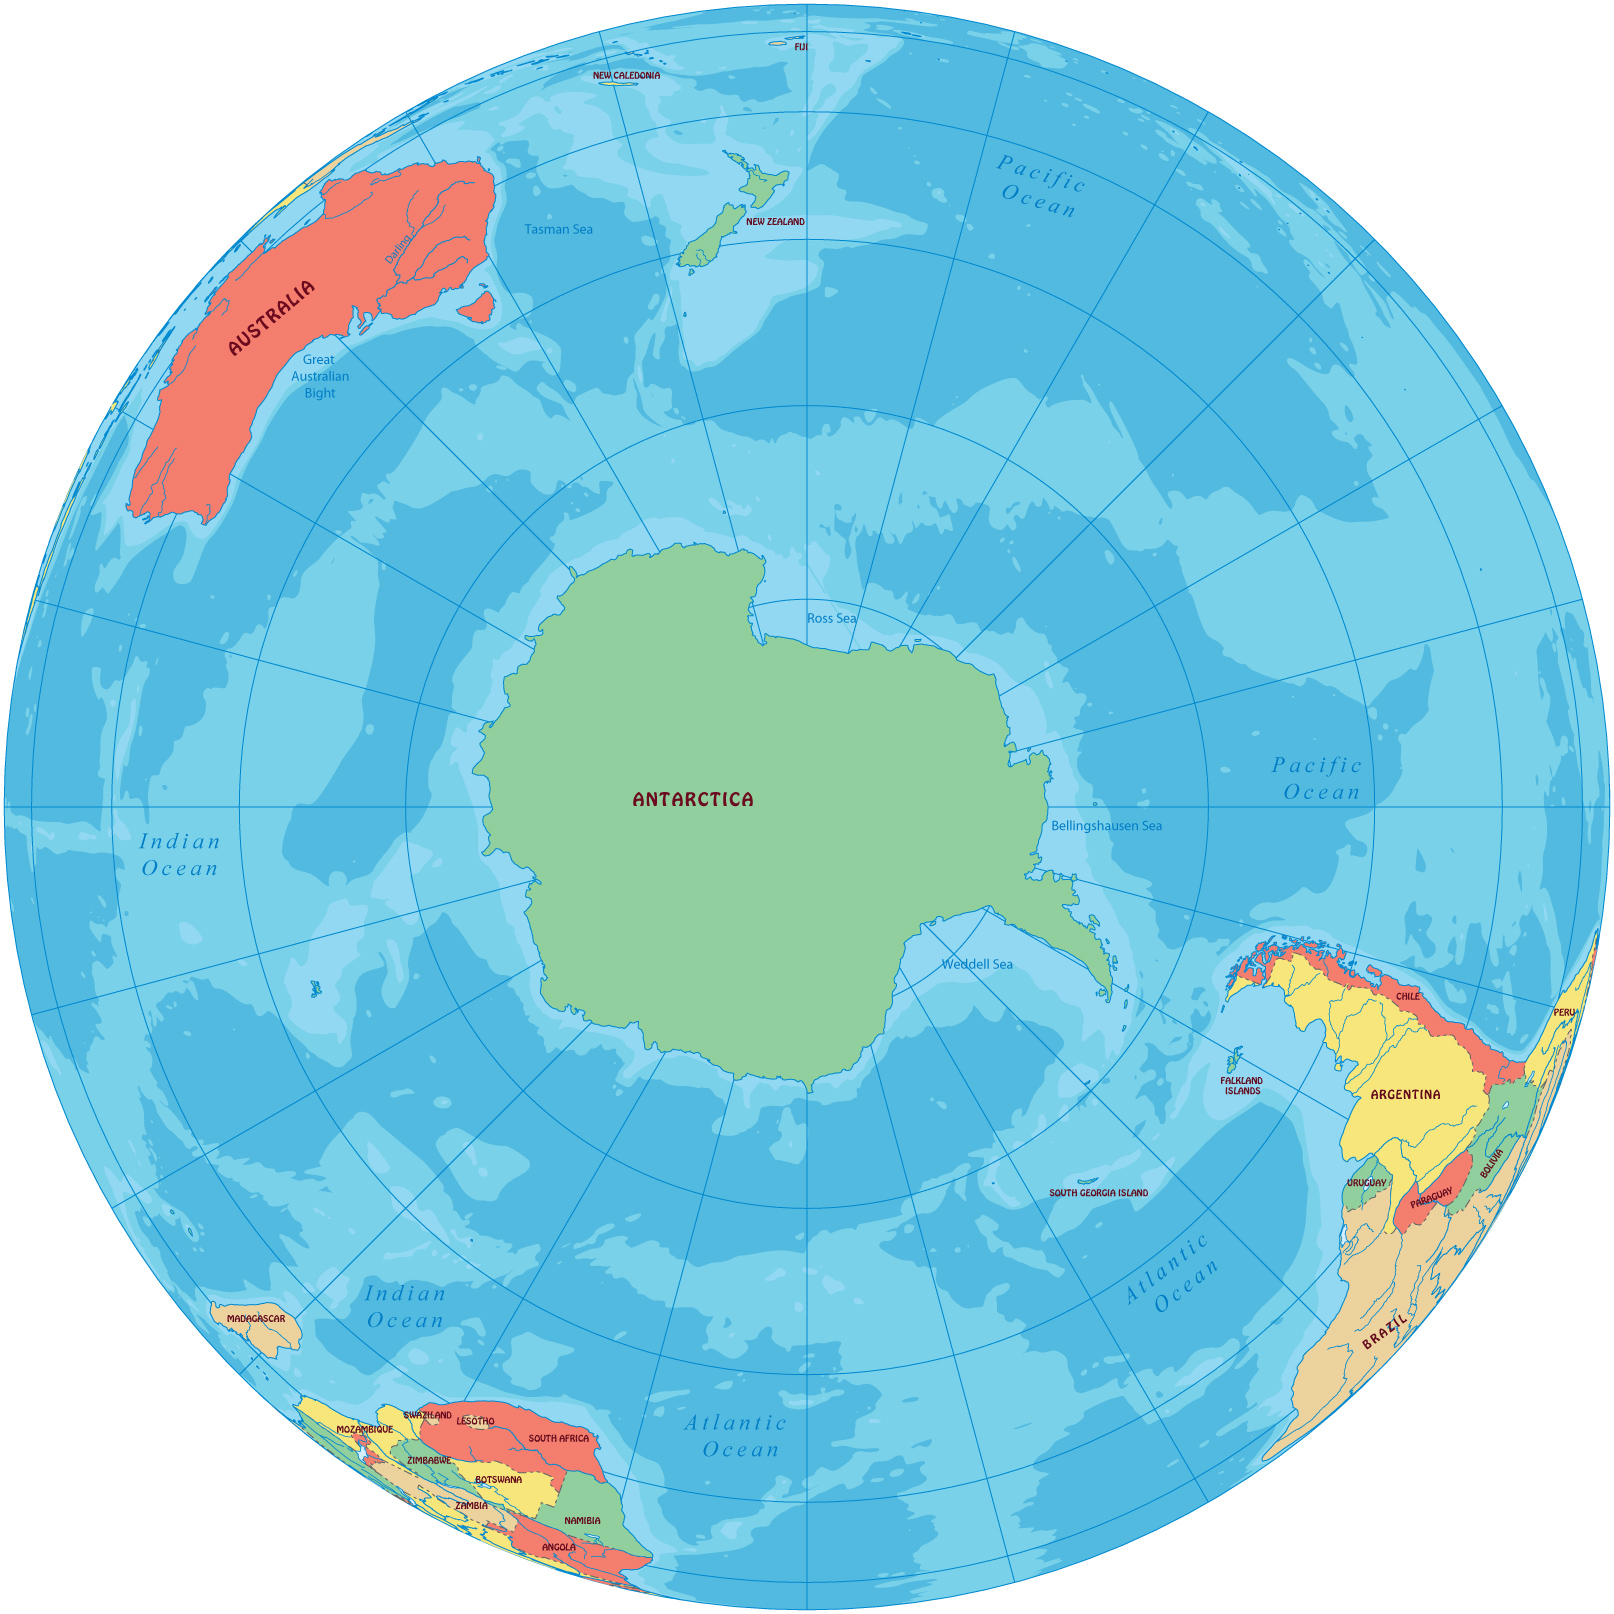 Antarctica Continent Map - Green and blue world map